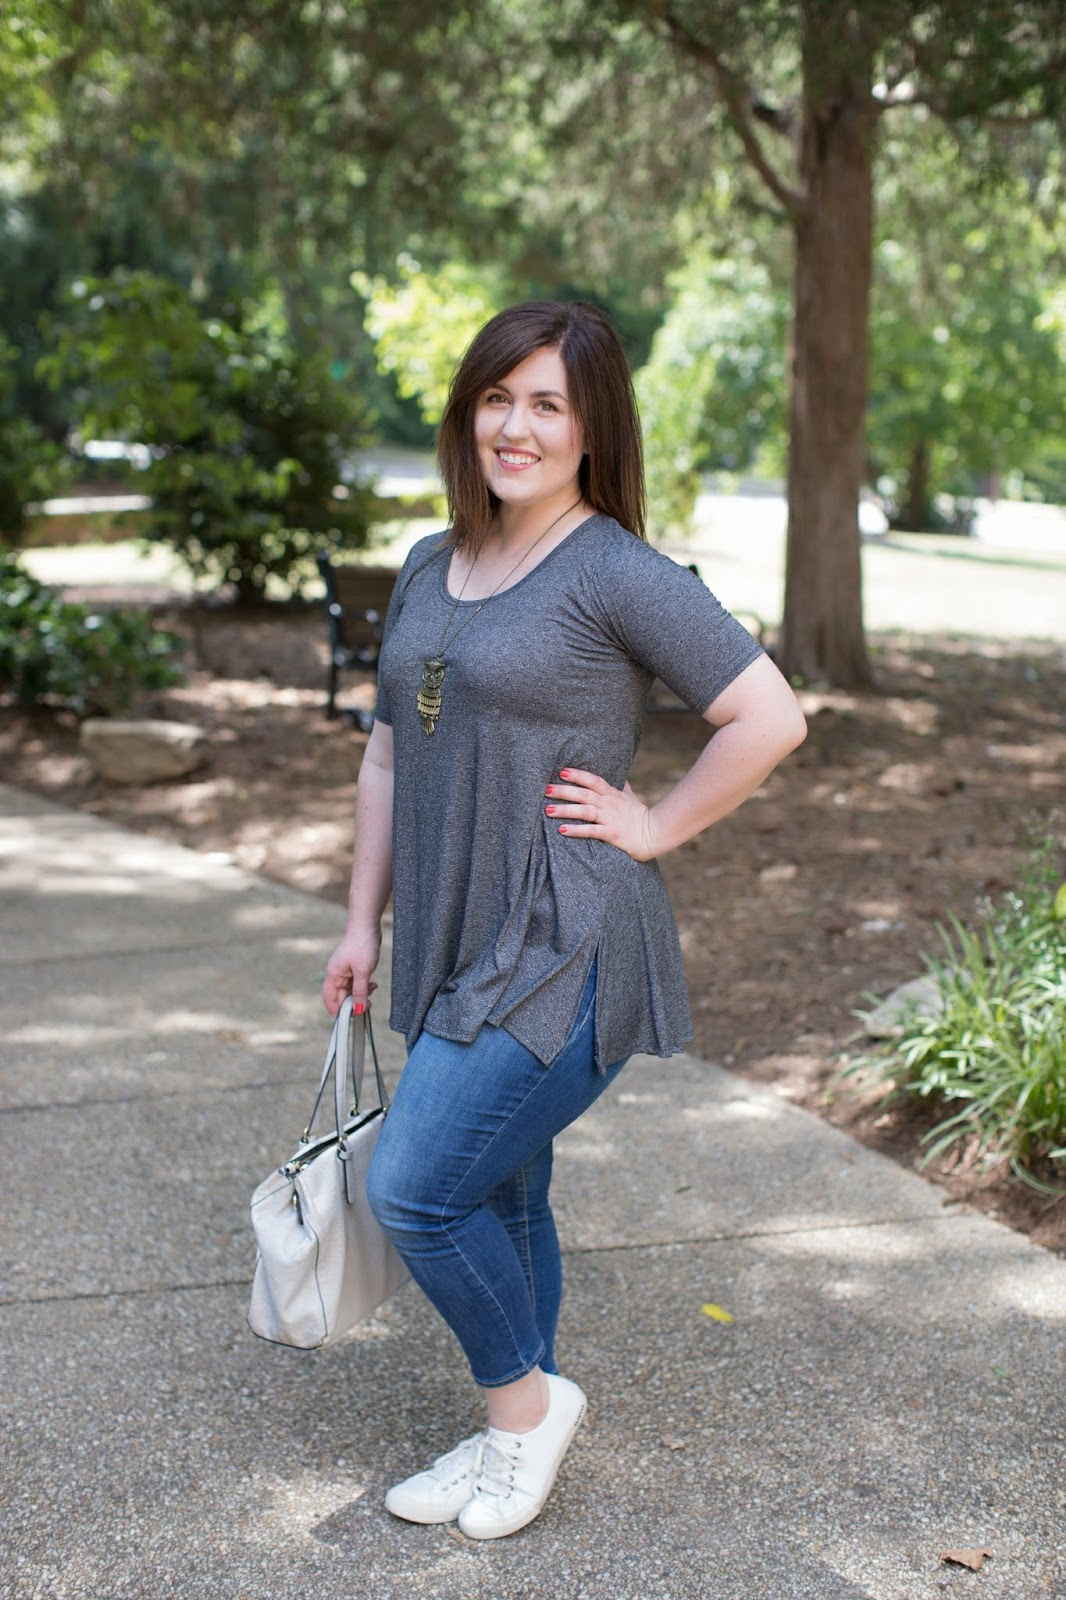 My Lularoe Perfect Tee by popular North Carolina style blogger Rebecca Lately